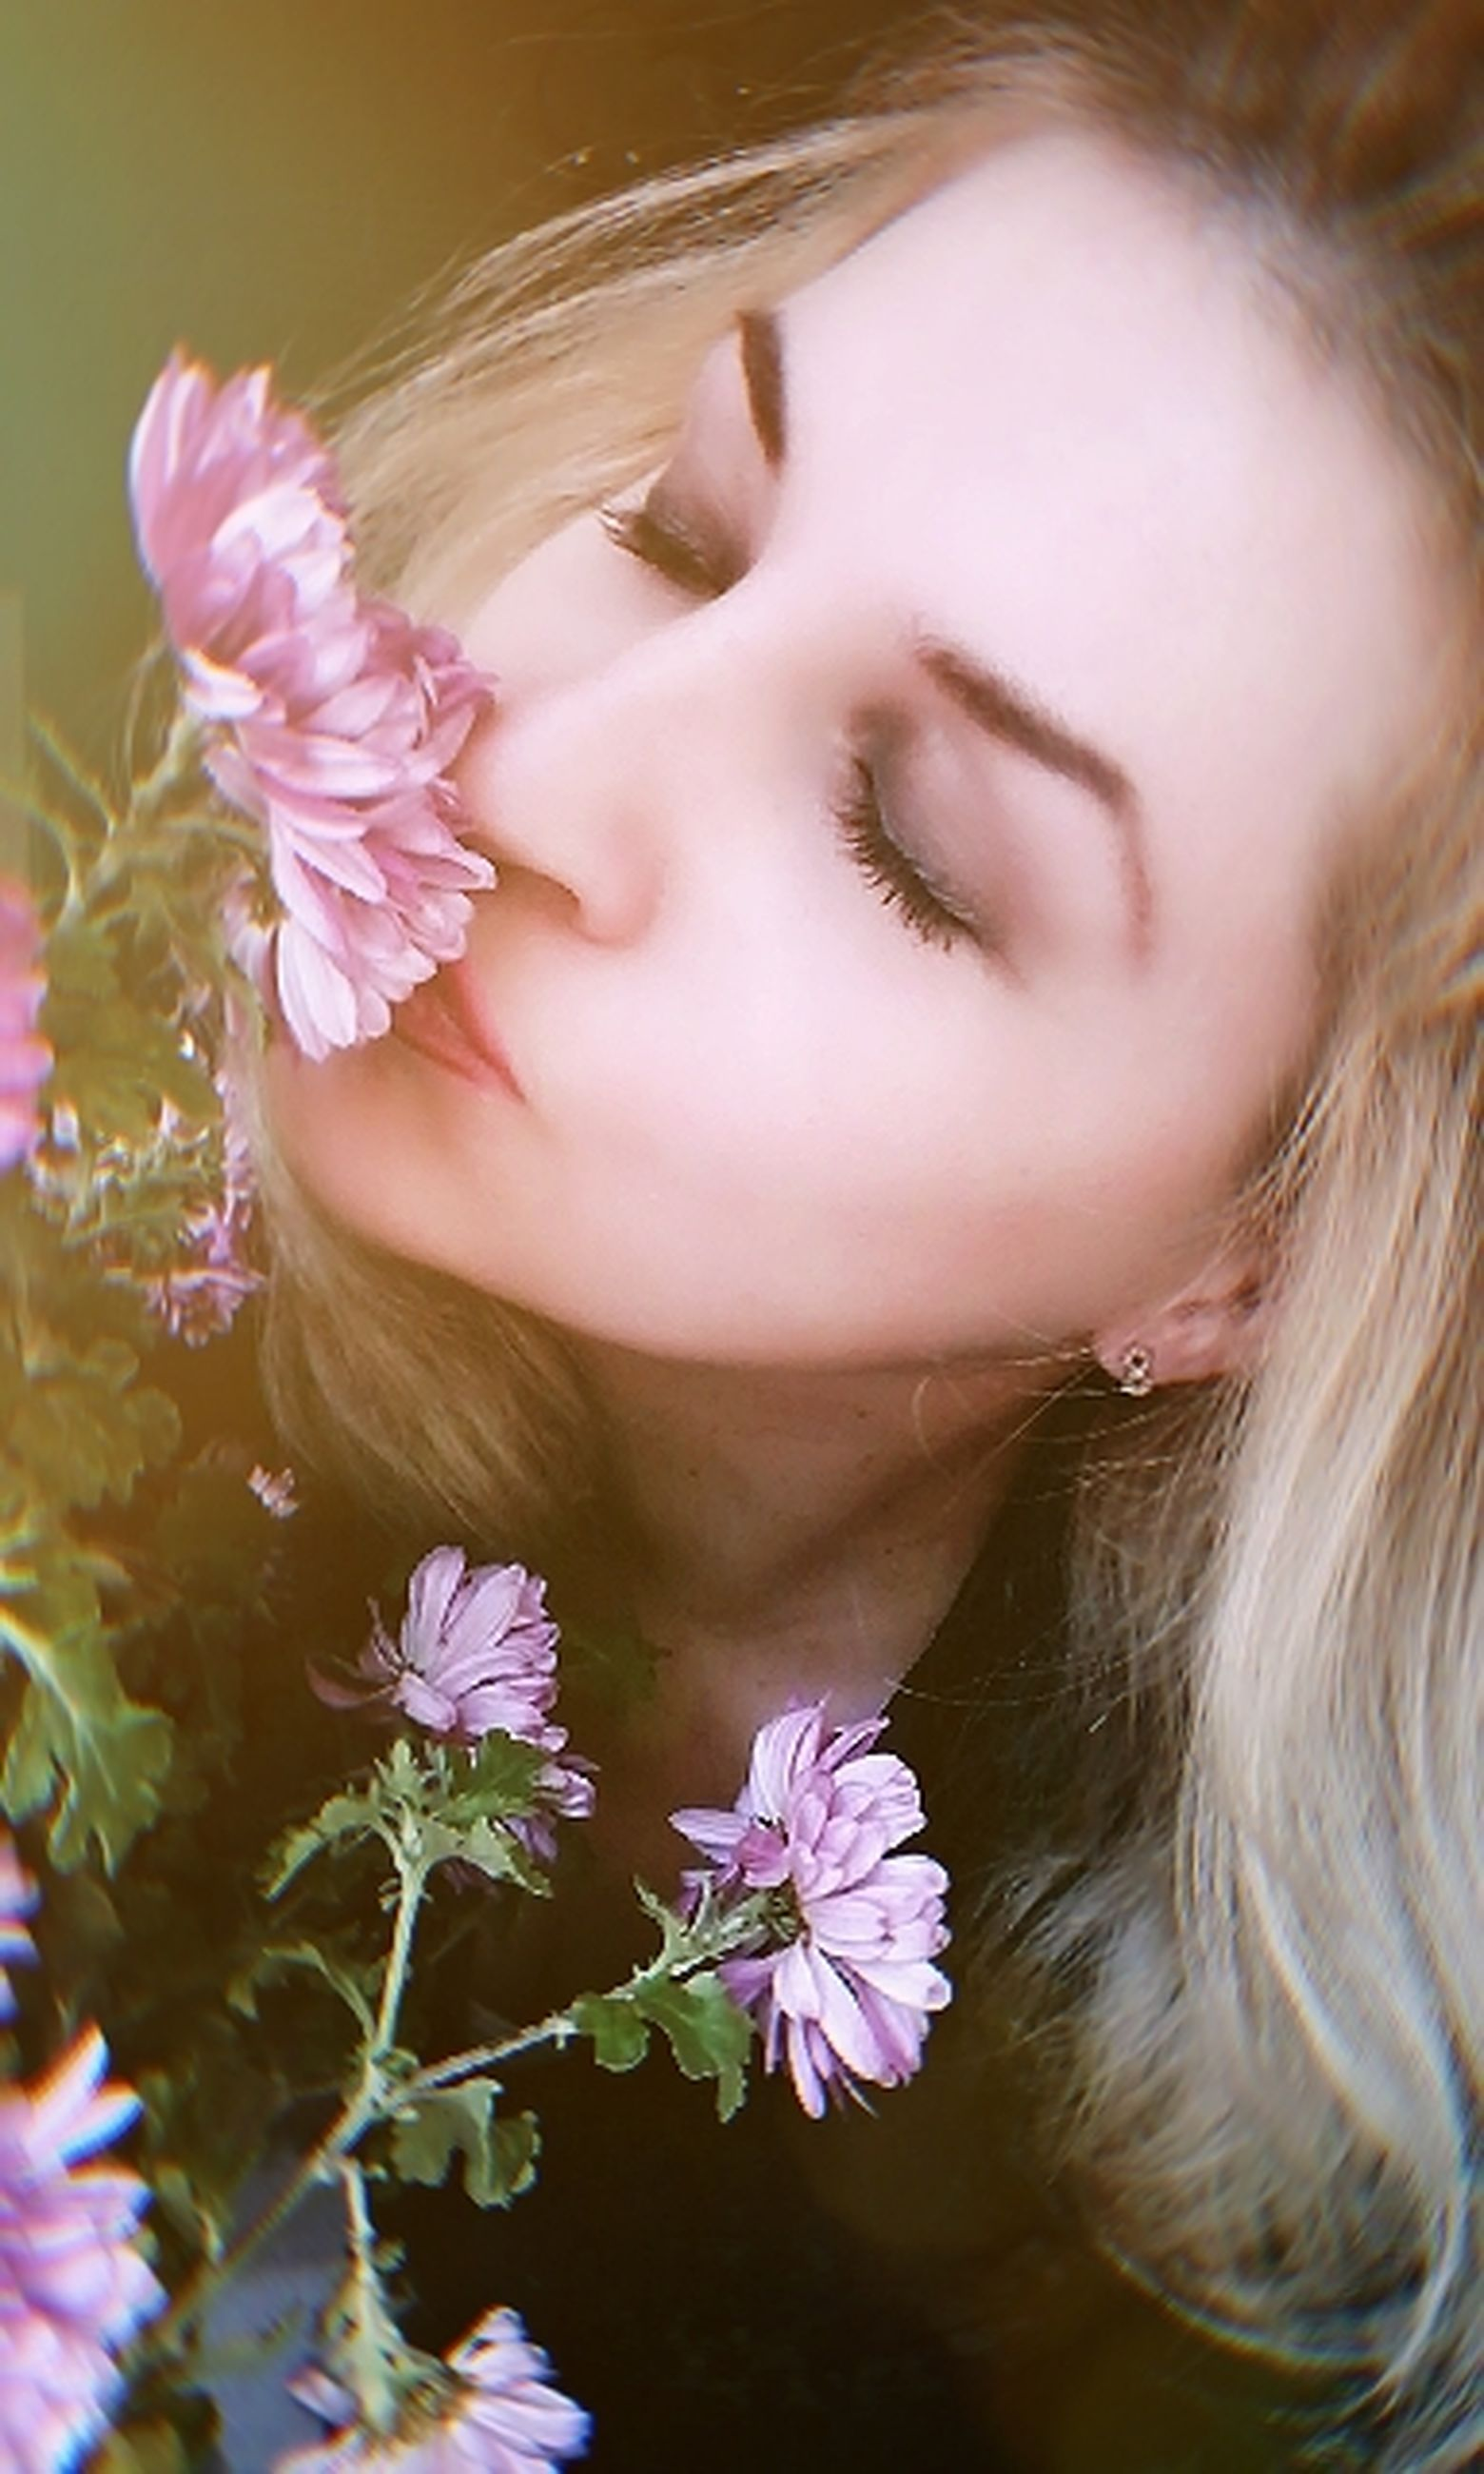 flower, flowering plant, plant, one person, headshot, real people, close-up, leisure activity, girls, lifestyles, portrait, freshness, young women, vulnerability, fragility, women, nature, child, young adult, hair, flower head, smelling, hairstyle, beautiful woman, human face